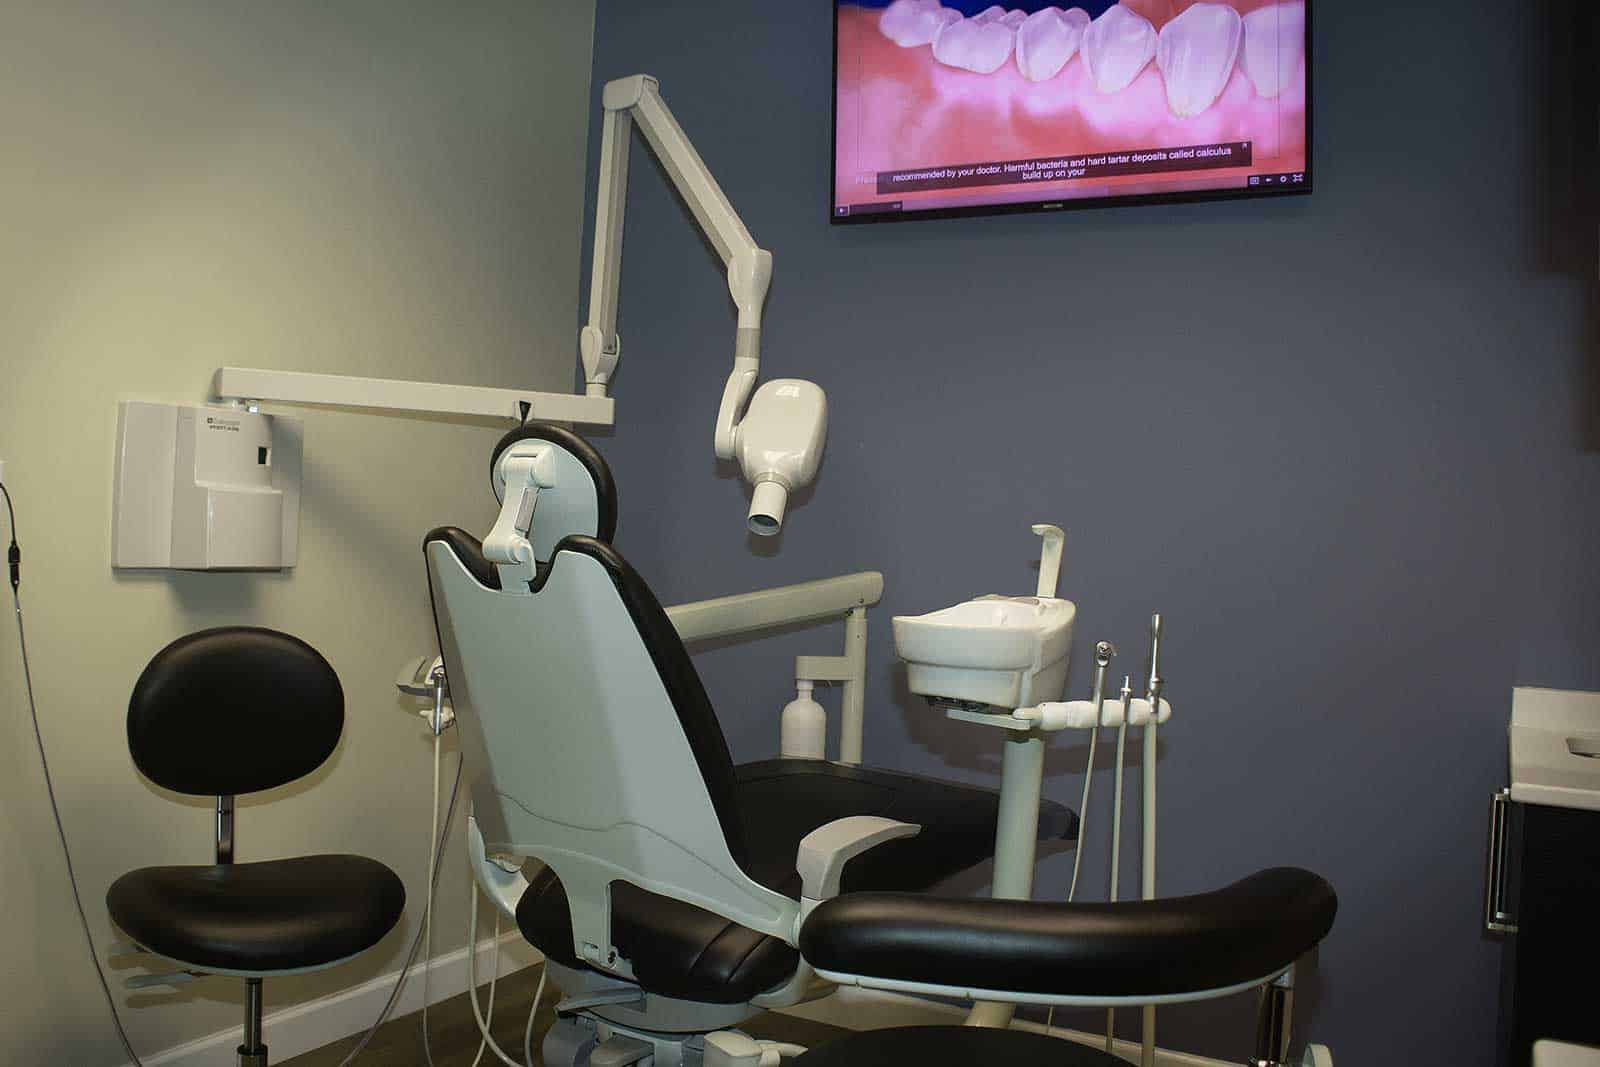 Dental Implants near Princeton NJ, Plainsboro NJ, Montomery NJ, and South Brunswick NJ